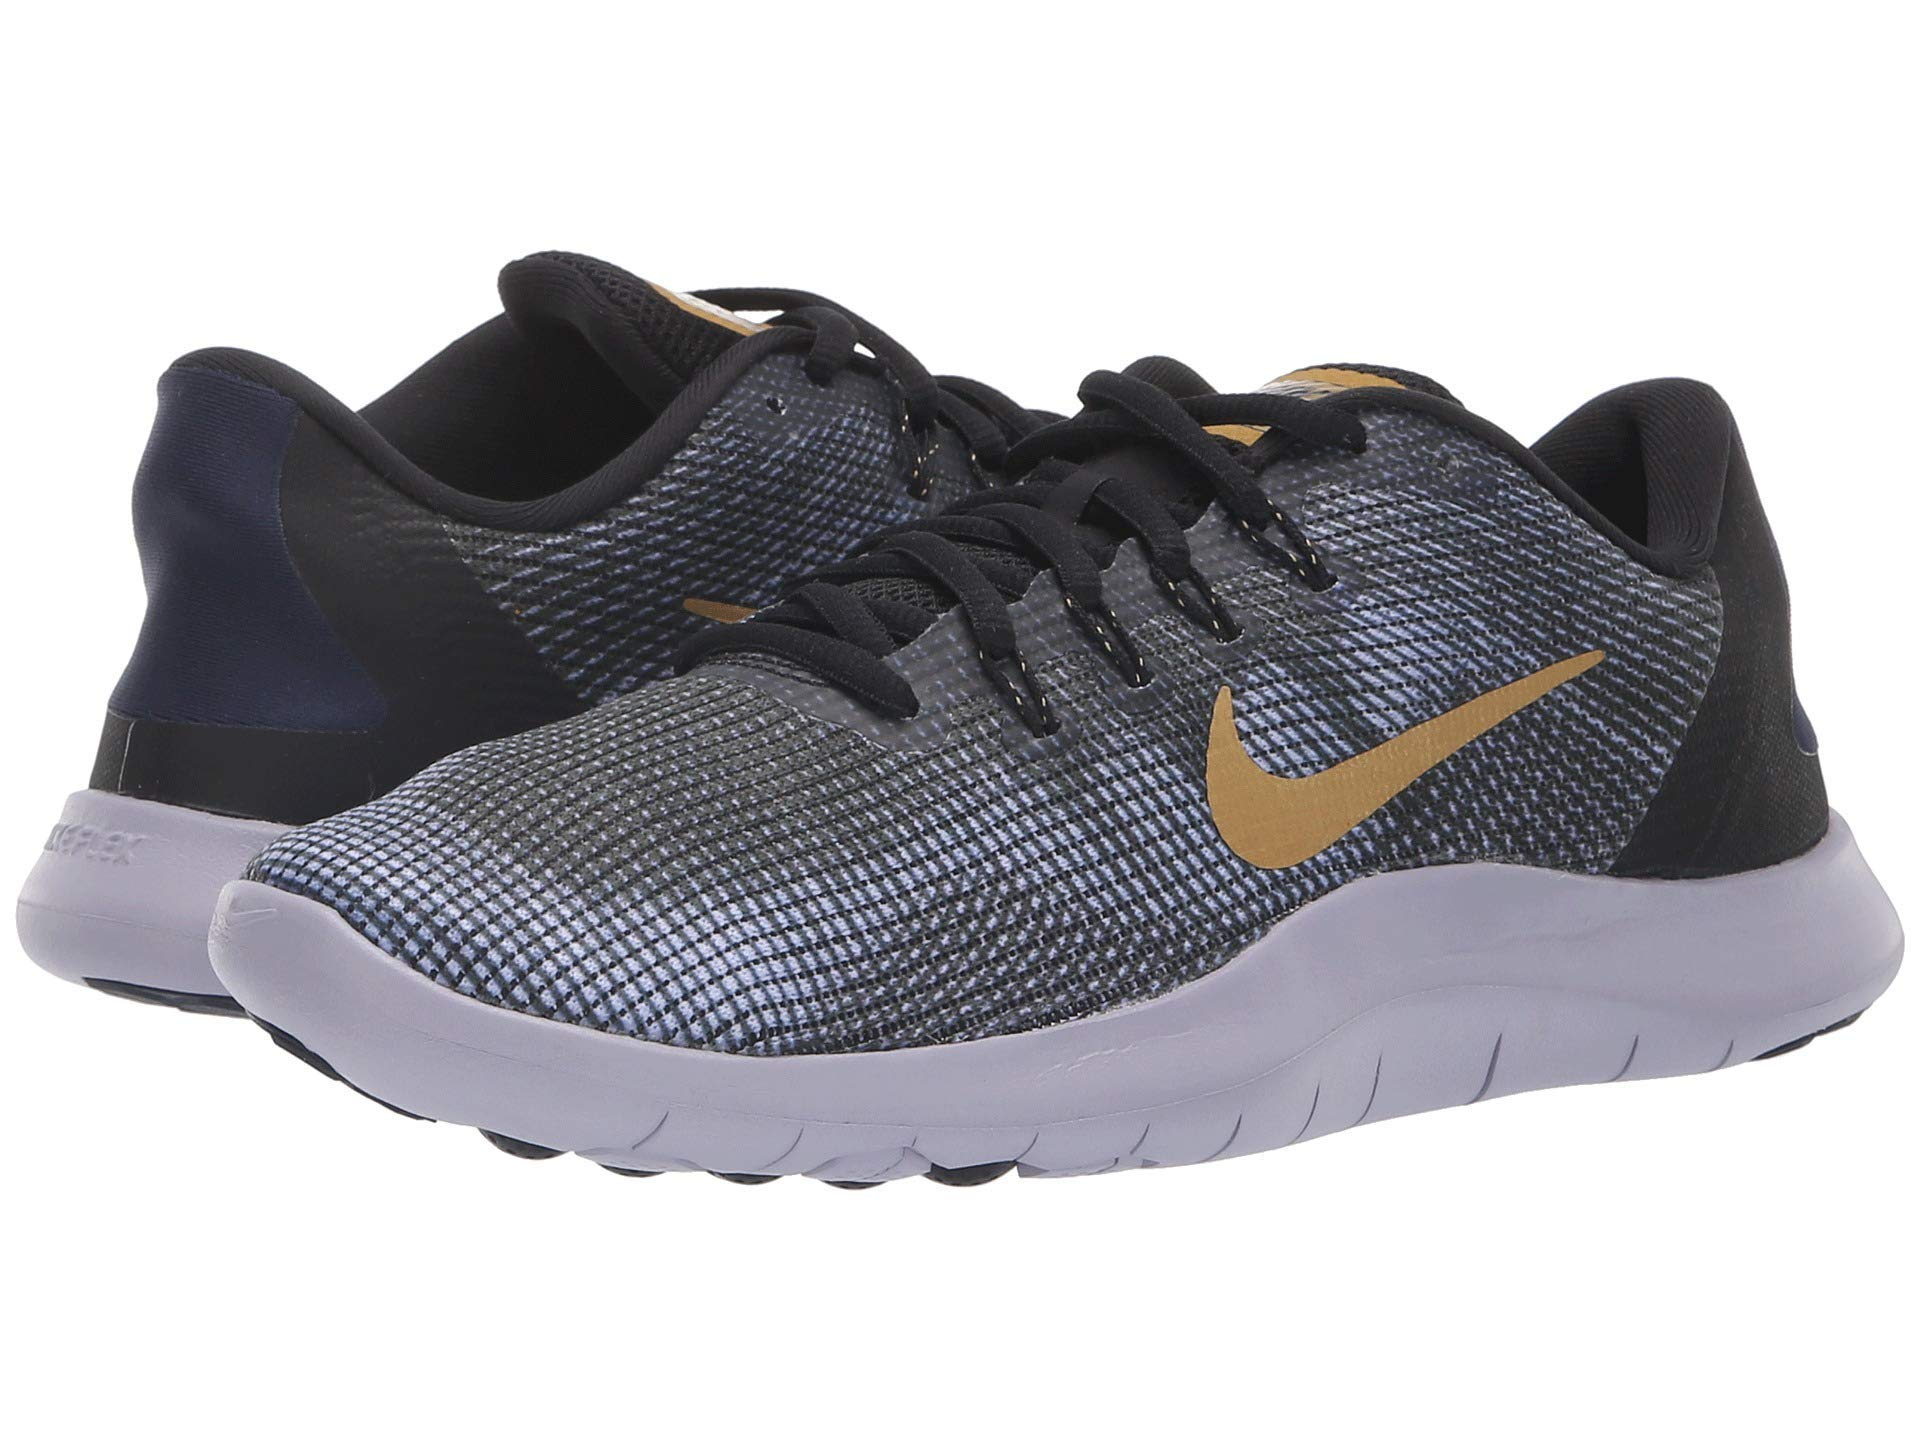 3a5fdcb147b Galleon - NIKE Women s Flex RN 2018 Running Shoe Black Metallic Gold  Obsidian Size 9 M US